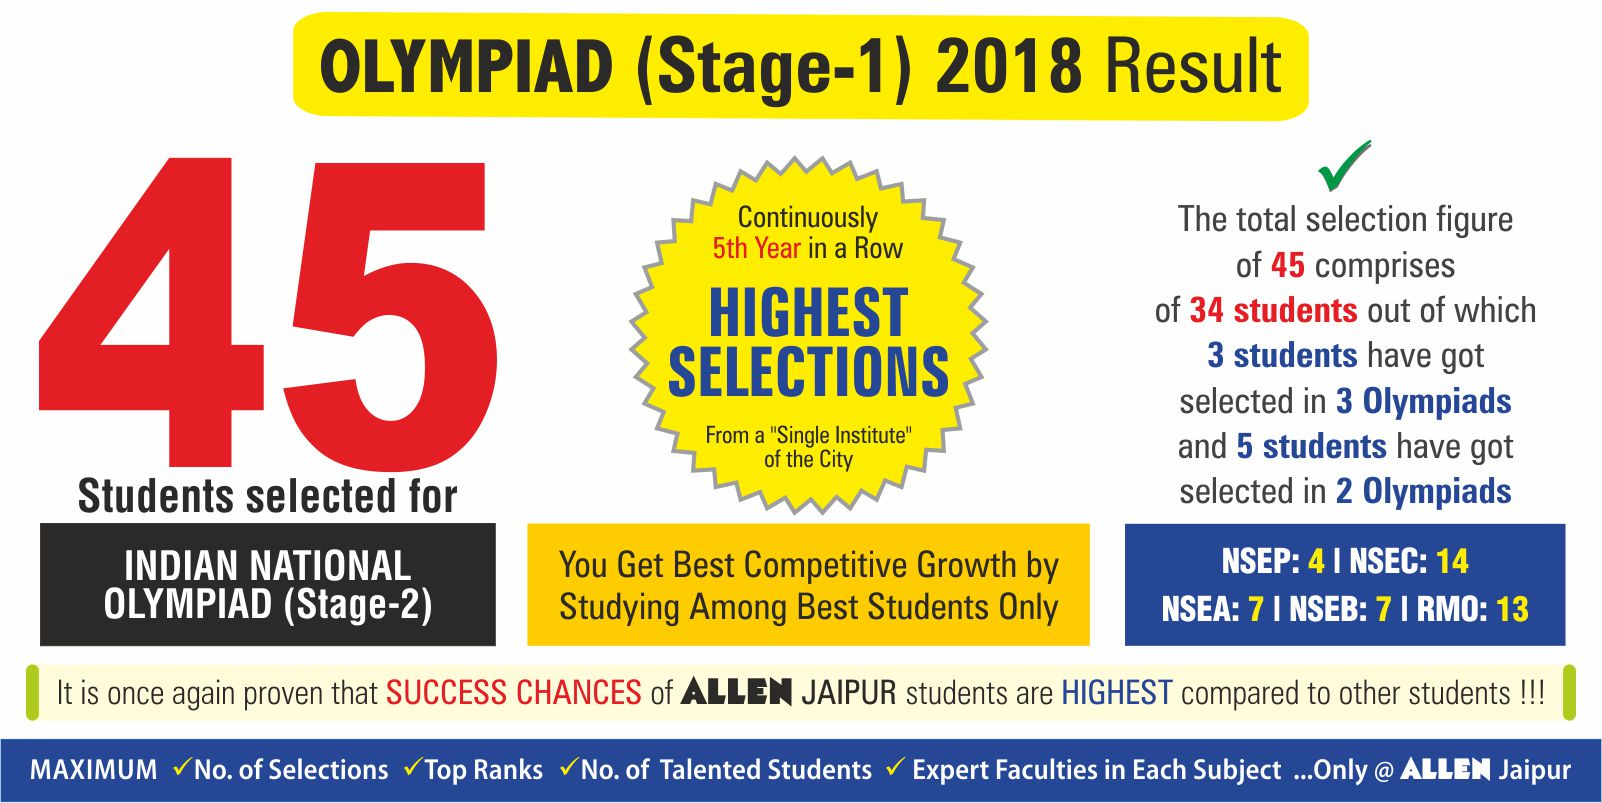 OLYMPIAD (STAGE-1) 2018